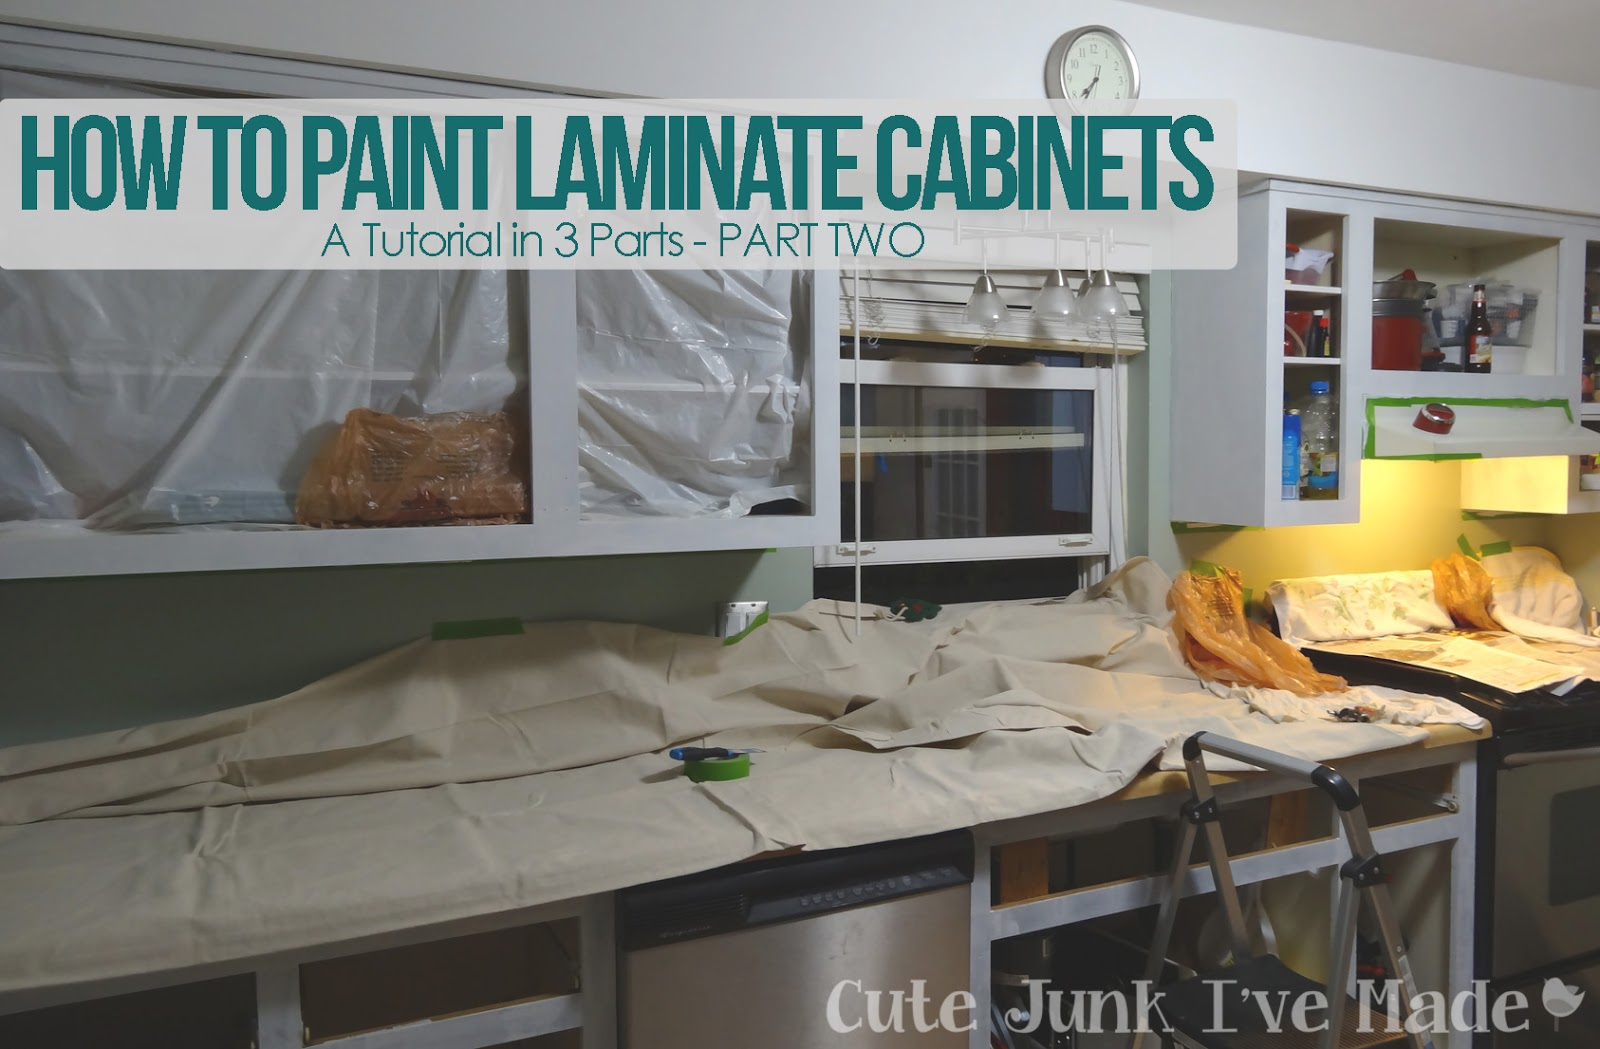 How Can You Paint Laminate Cabinets